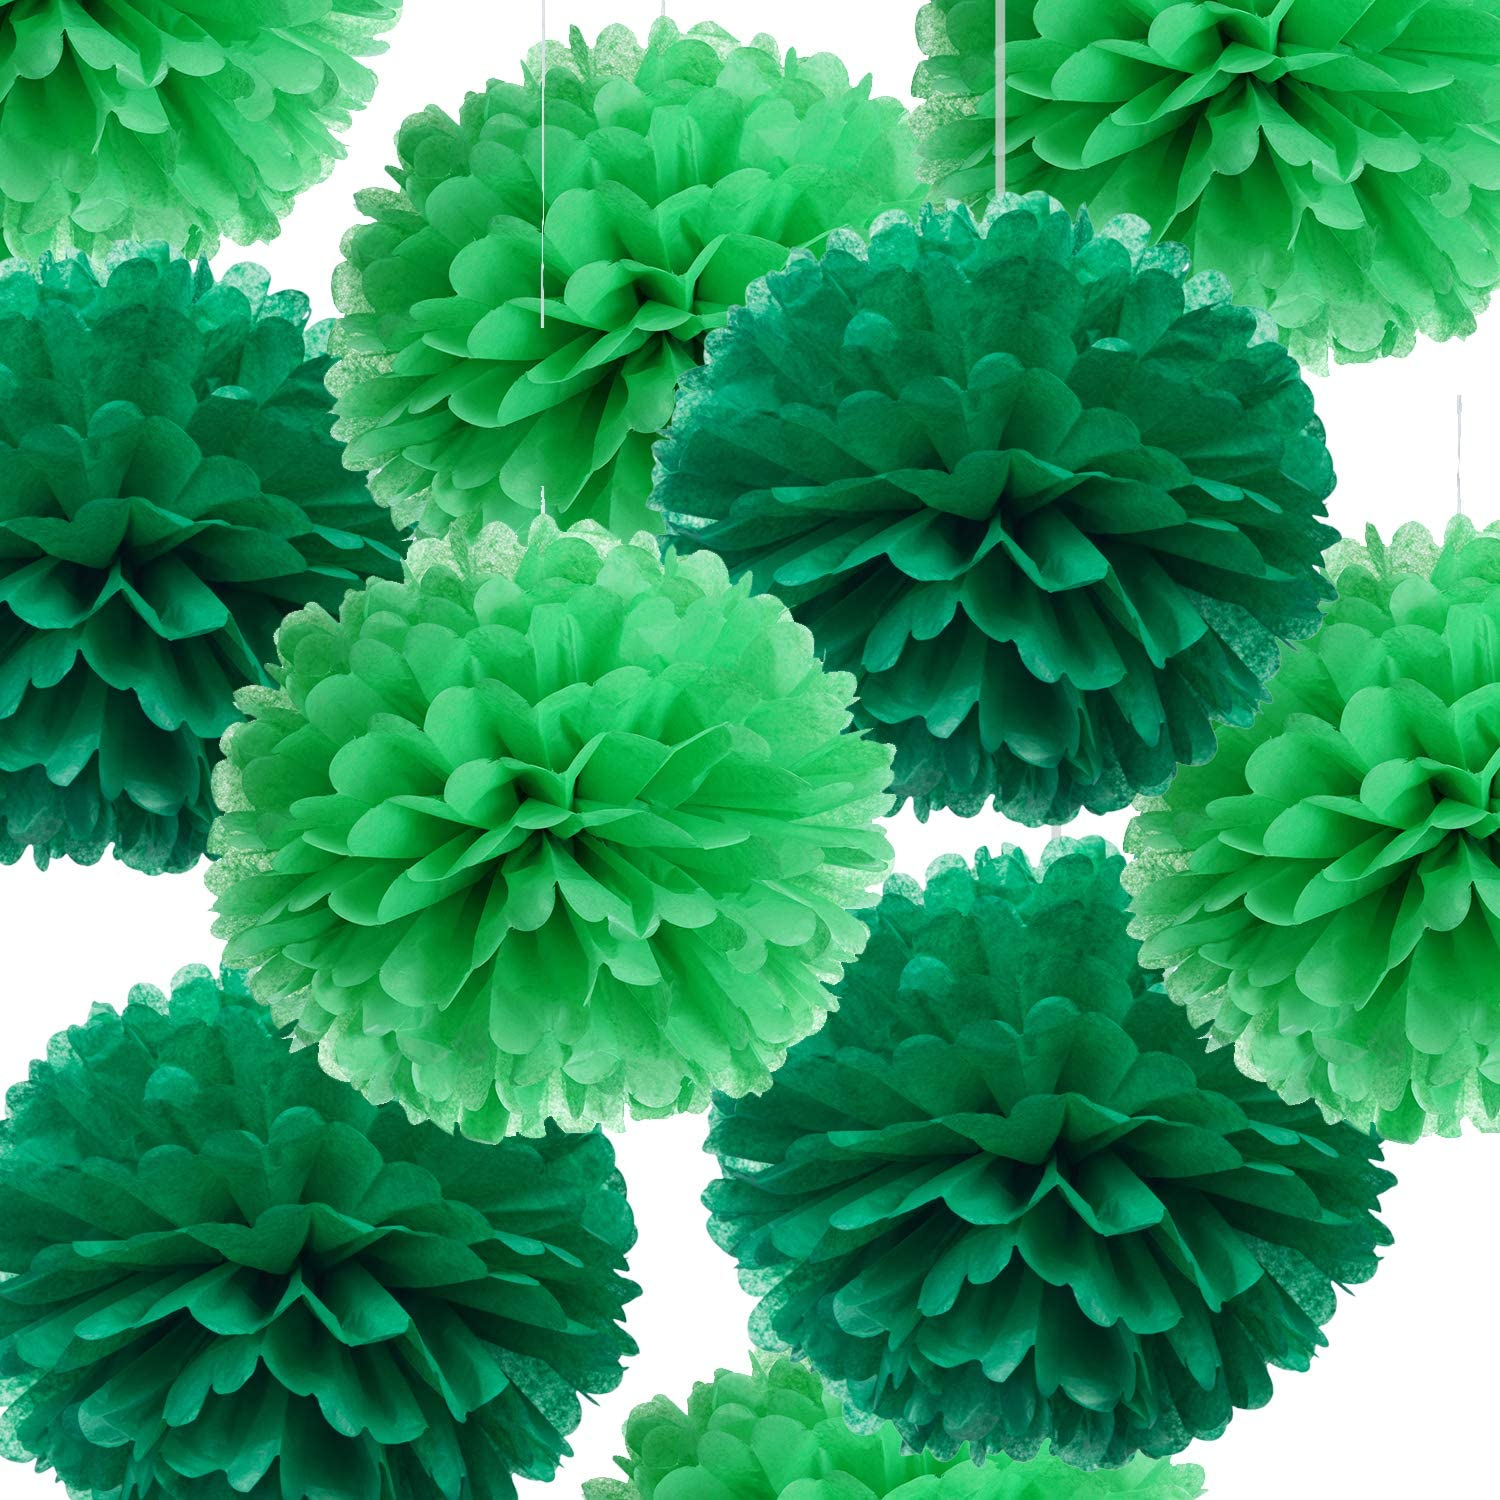 """14"""" Green Tissue Pom Poms Kit DIY Decorative Paper Flowers Ball for Birthday Party Wedding Baby Shower Home Outdoor Hanging Decorations, Pack of 10"""